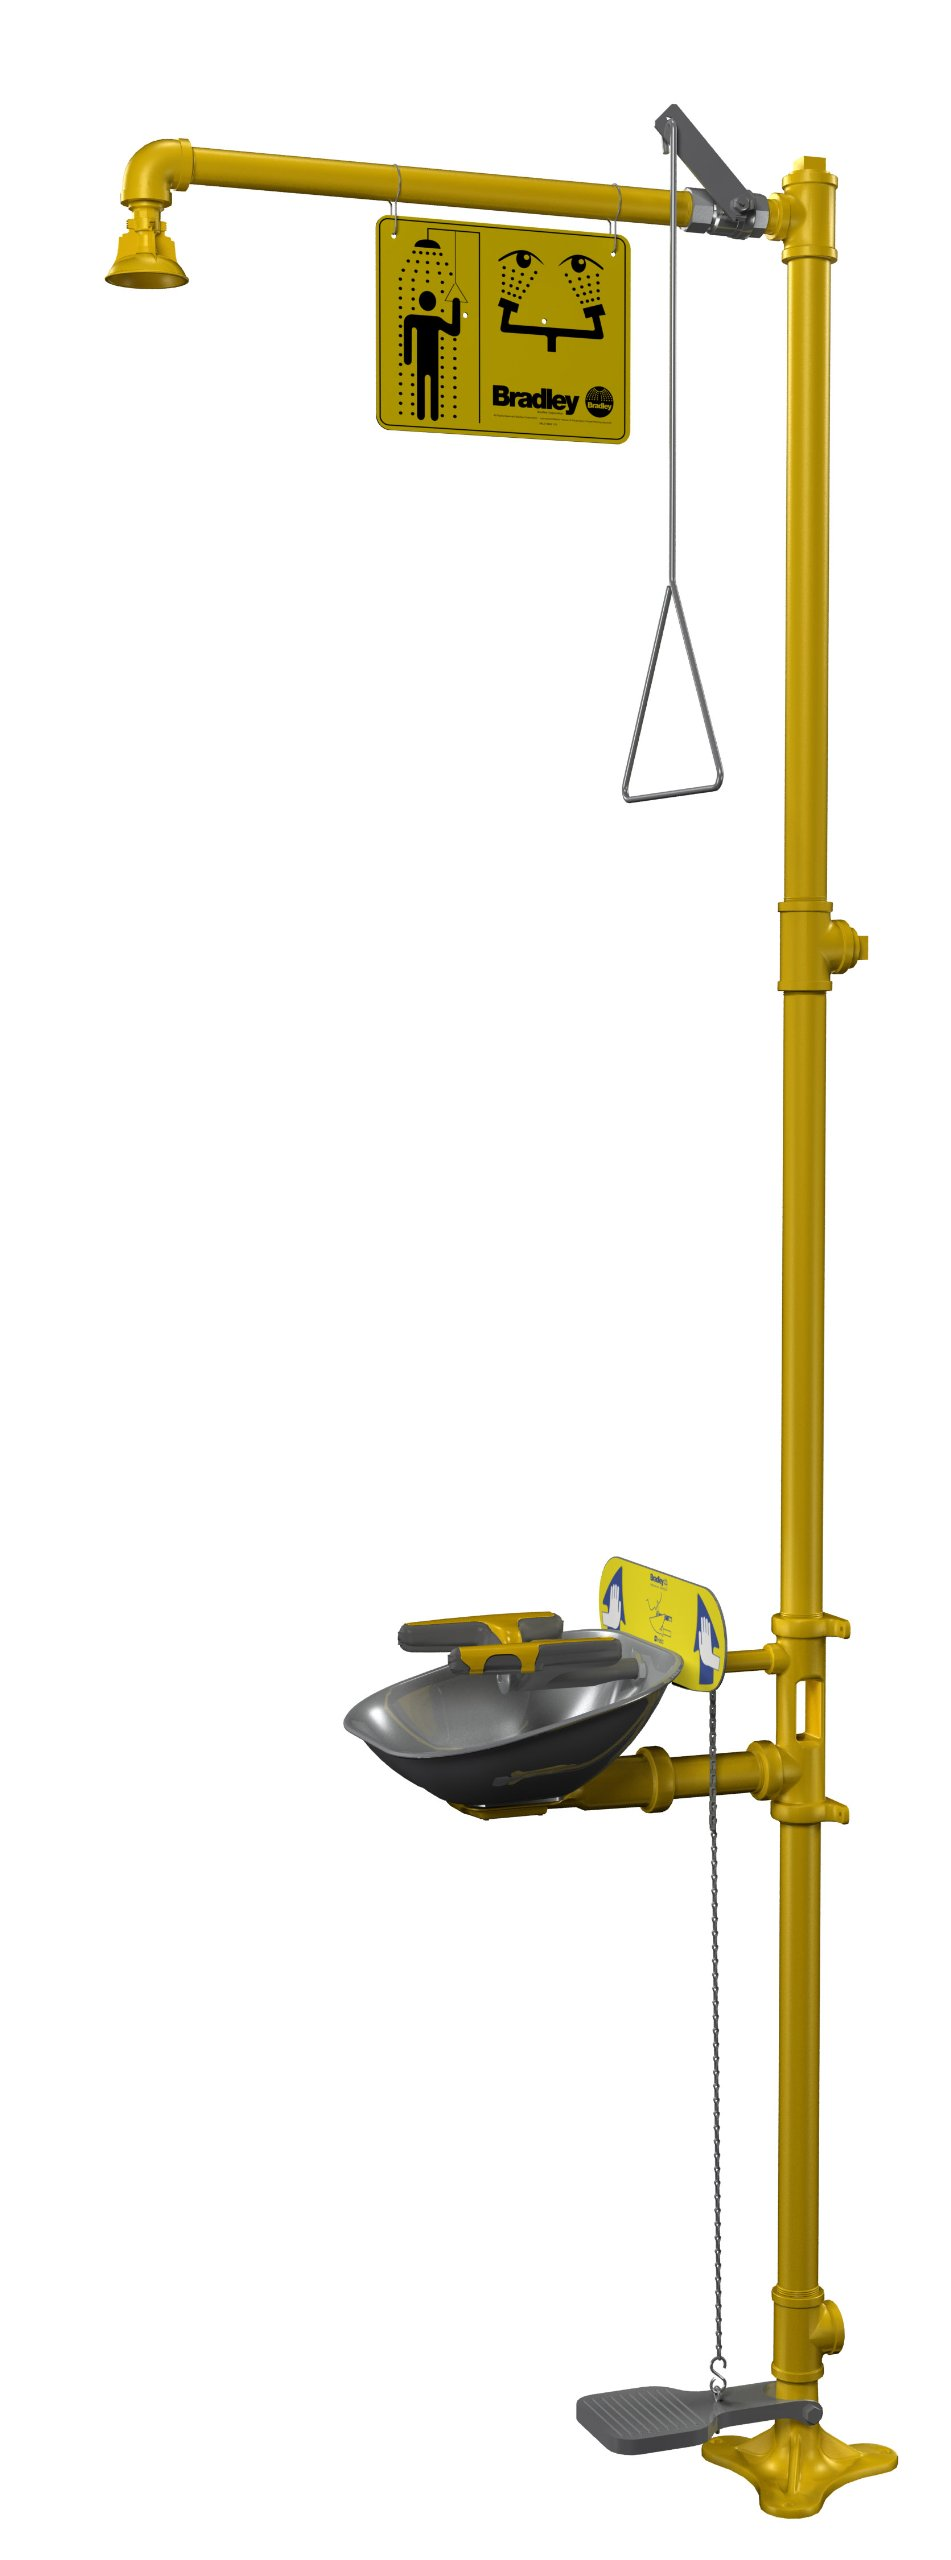 Bradley S19314AC Galvanized Steel 3 Spray Head Halo Combination Drench Showers and Eye/Face Wash Unit with Hand/Foot Operated Eyewash, 20 GPM, 18-1/2'' Width x 94-1/8'' Height x 26-13/16'' Depth, Yellow